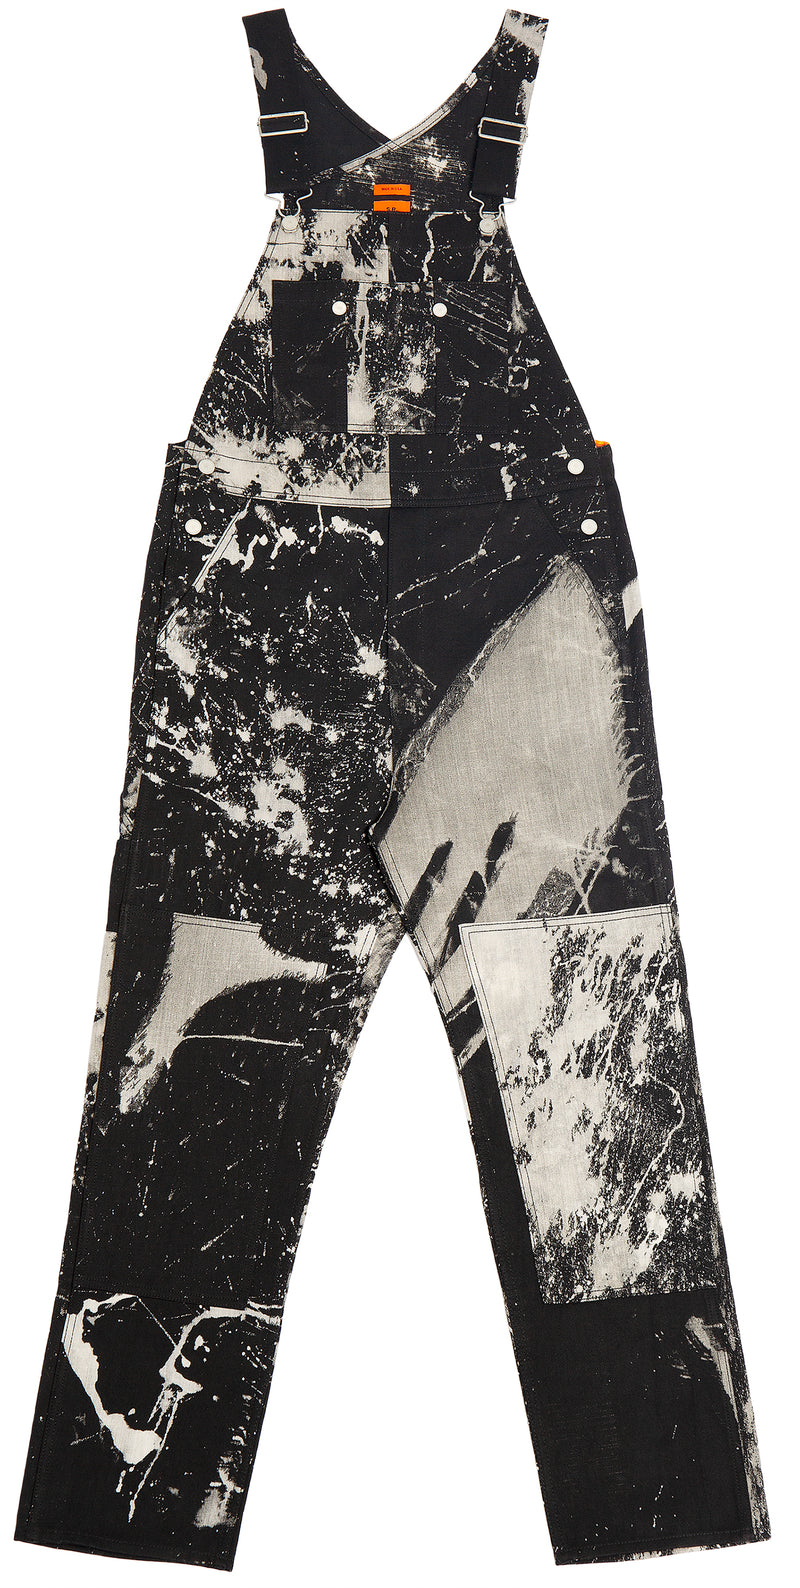 MEN'S HAND-BLEACHED SOTO OVERALL S.R. STUDIO. LA. CA. BY STERLING RUBY